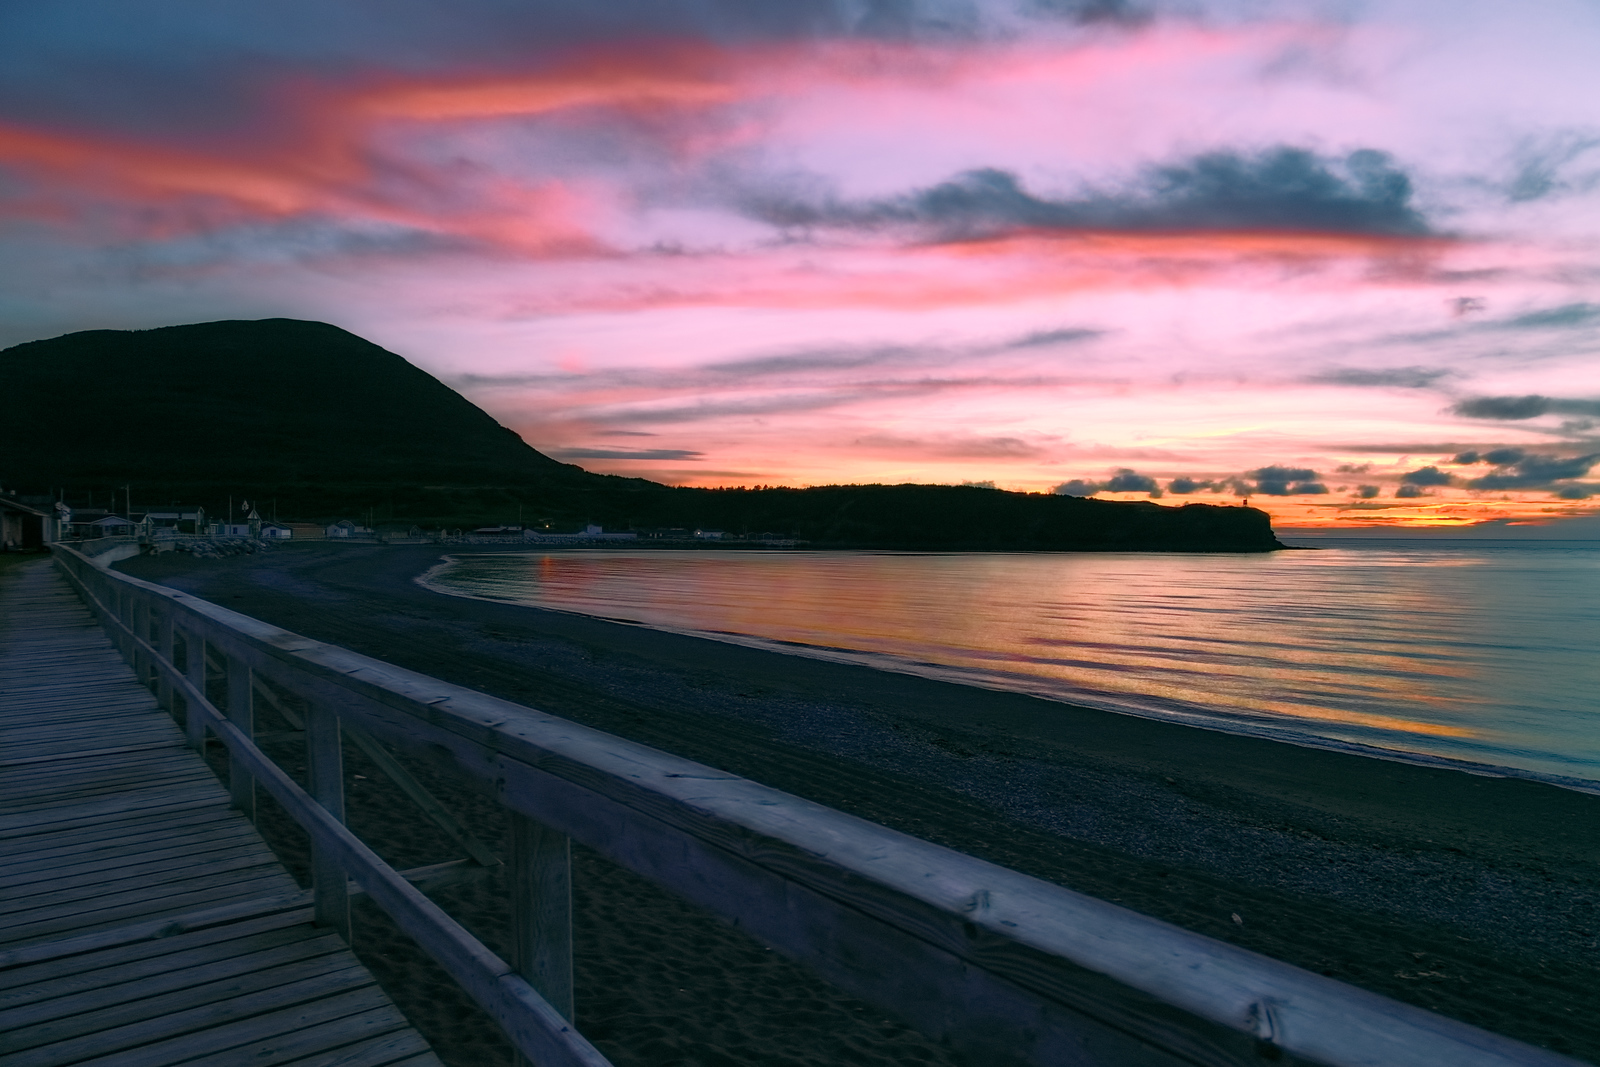 Sunset over Trout River